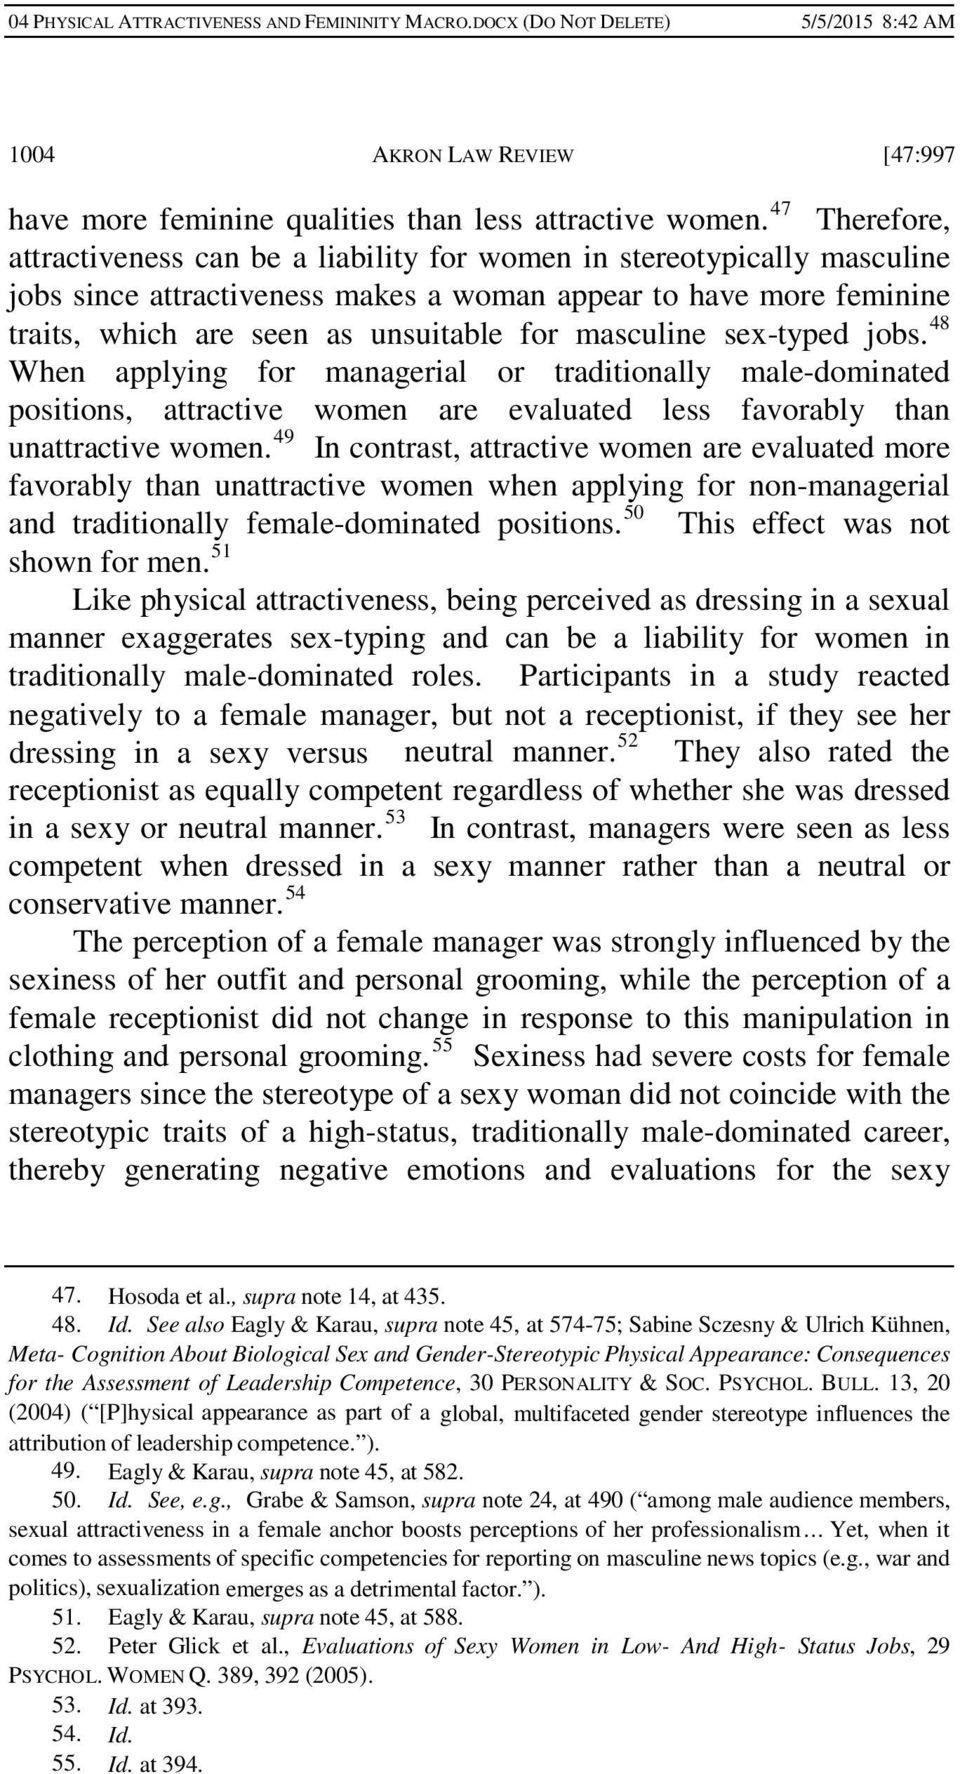 masculine sex-typed jobs. 48 When applying for managerial or traditionally male-dominated positions, attractive women are evaluated less favorably than unattractive women.